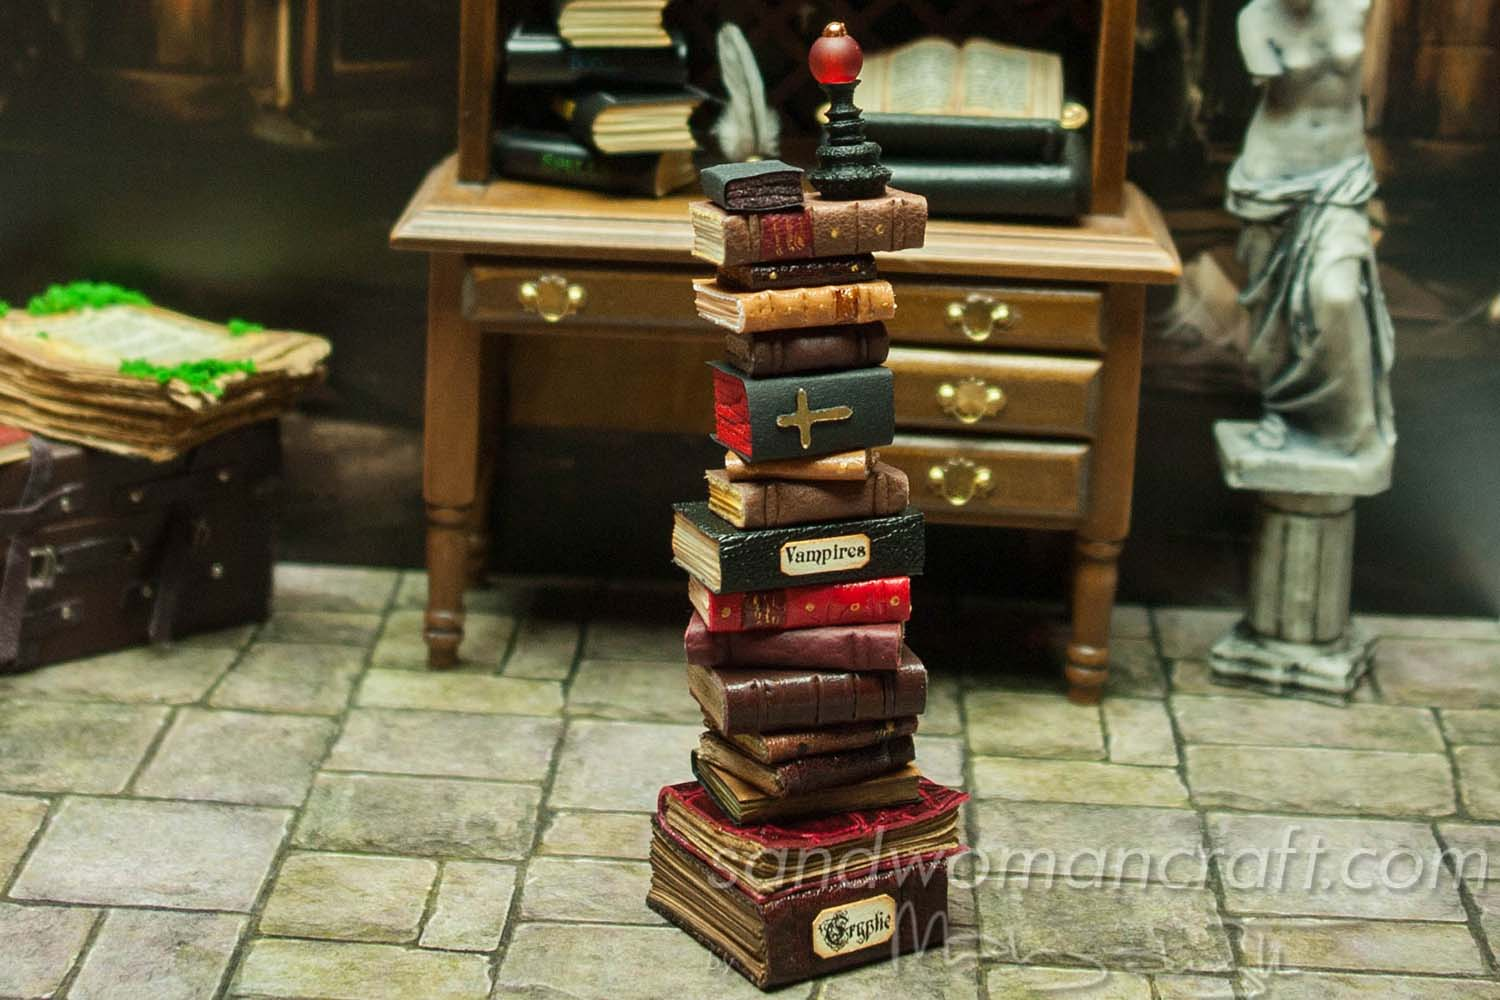 Miniature book stack Vampires Cryptic in 1:12 scale